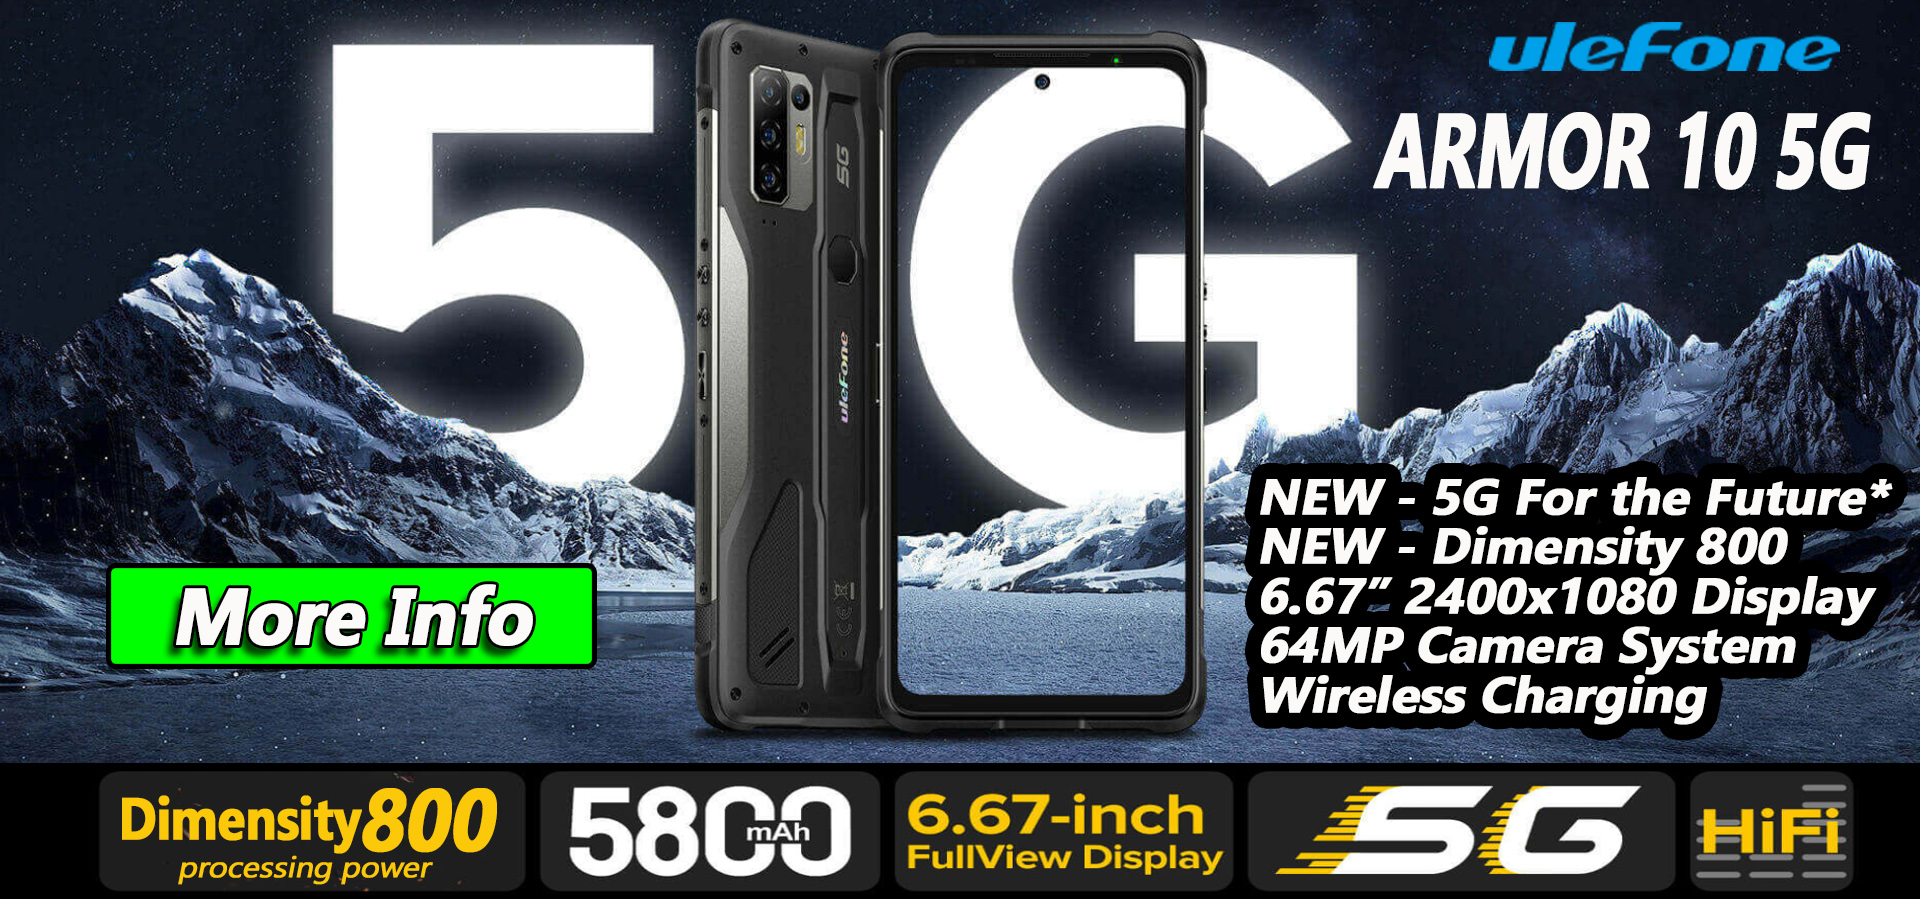 Ulefone Armor 10 5G - In Stock now